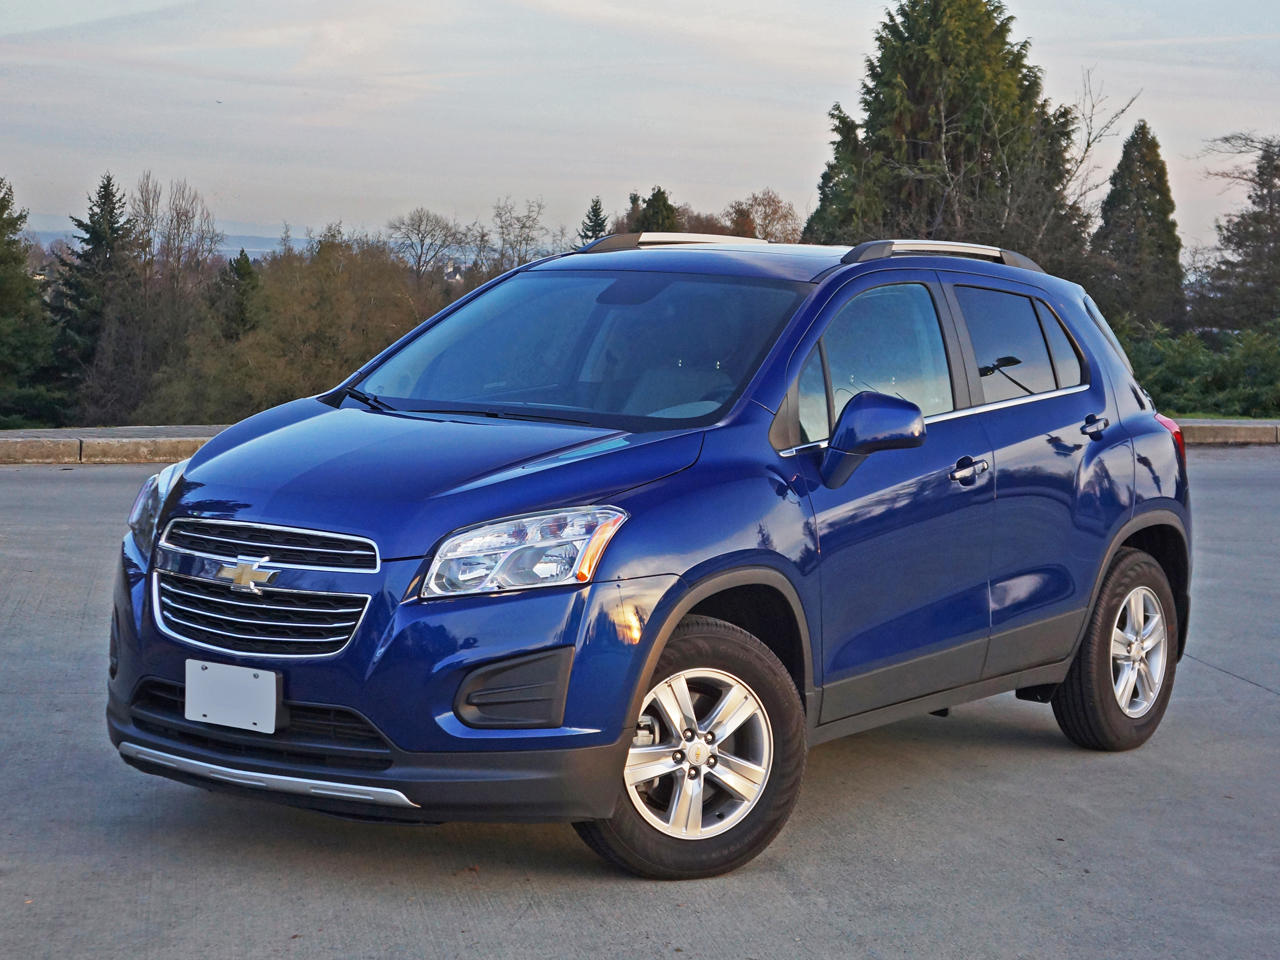 chevrolet trax suv 2016 suv drive. Black Bedroom Furniture Sets. Home Design Ideas